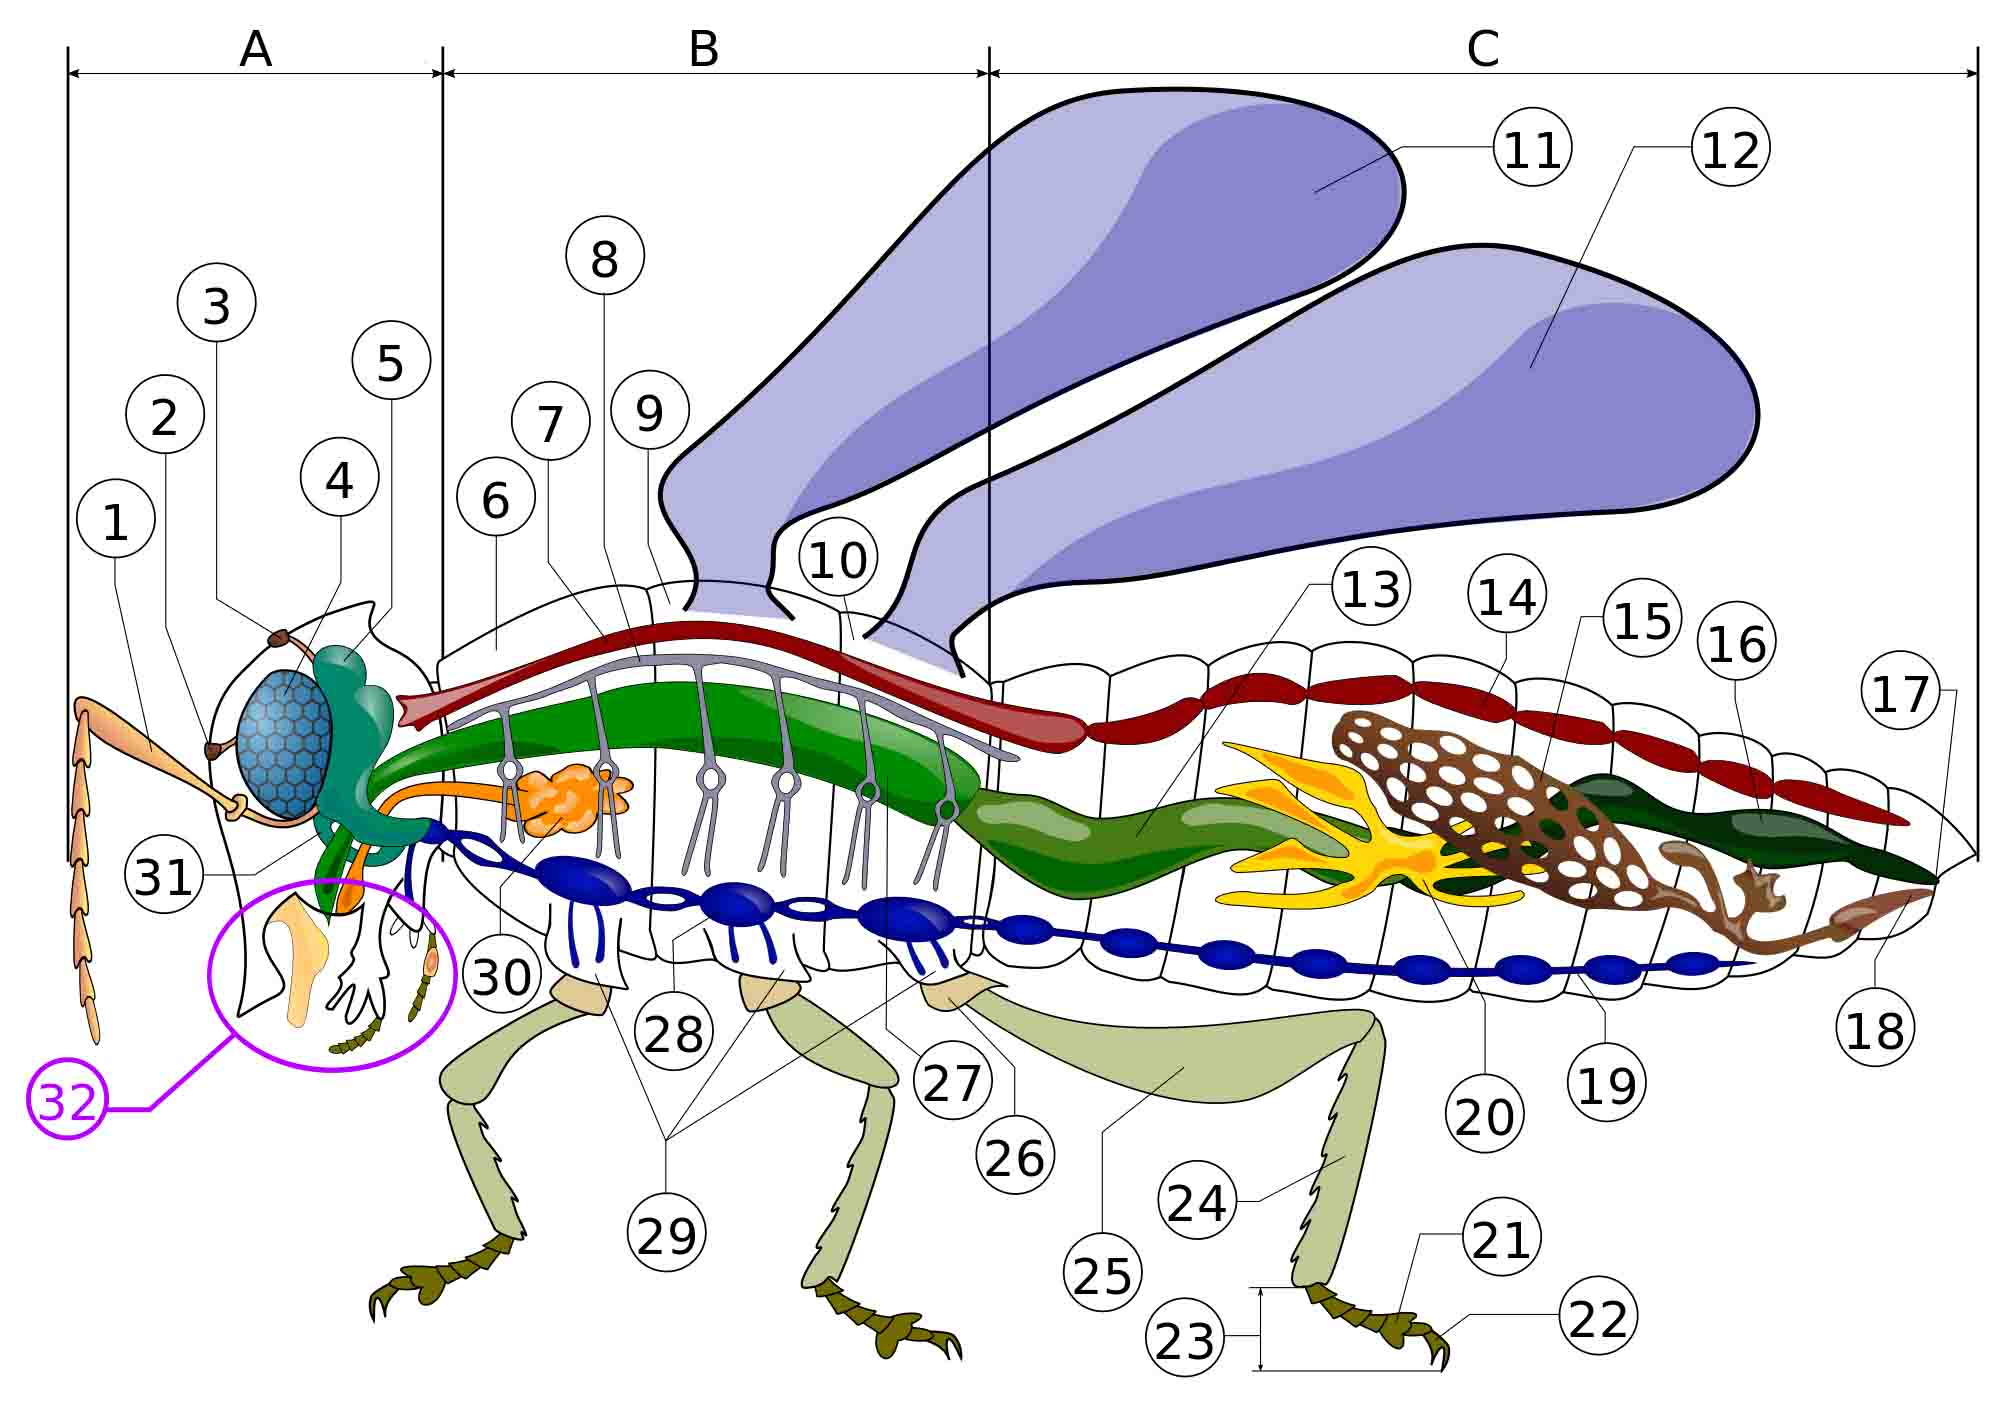 Color illustration of an insect with labels for different body parts.